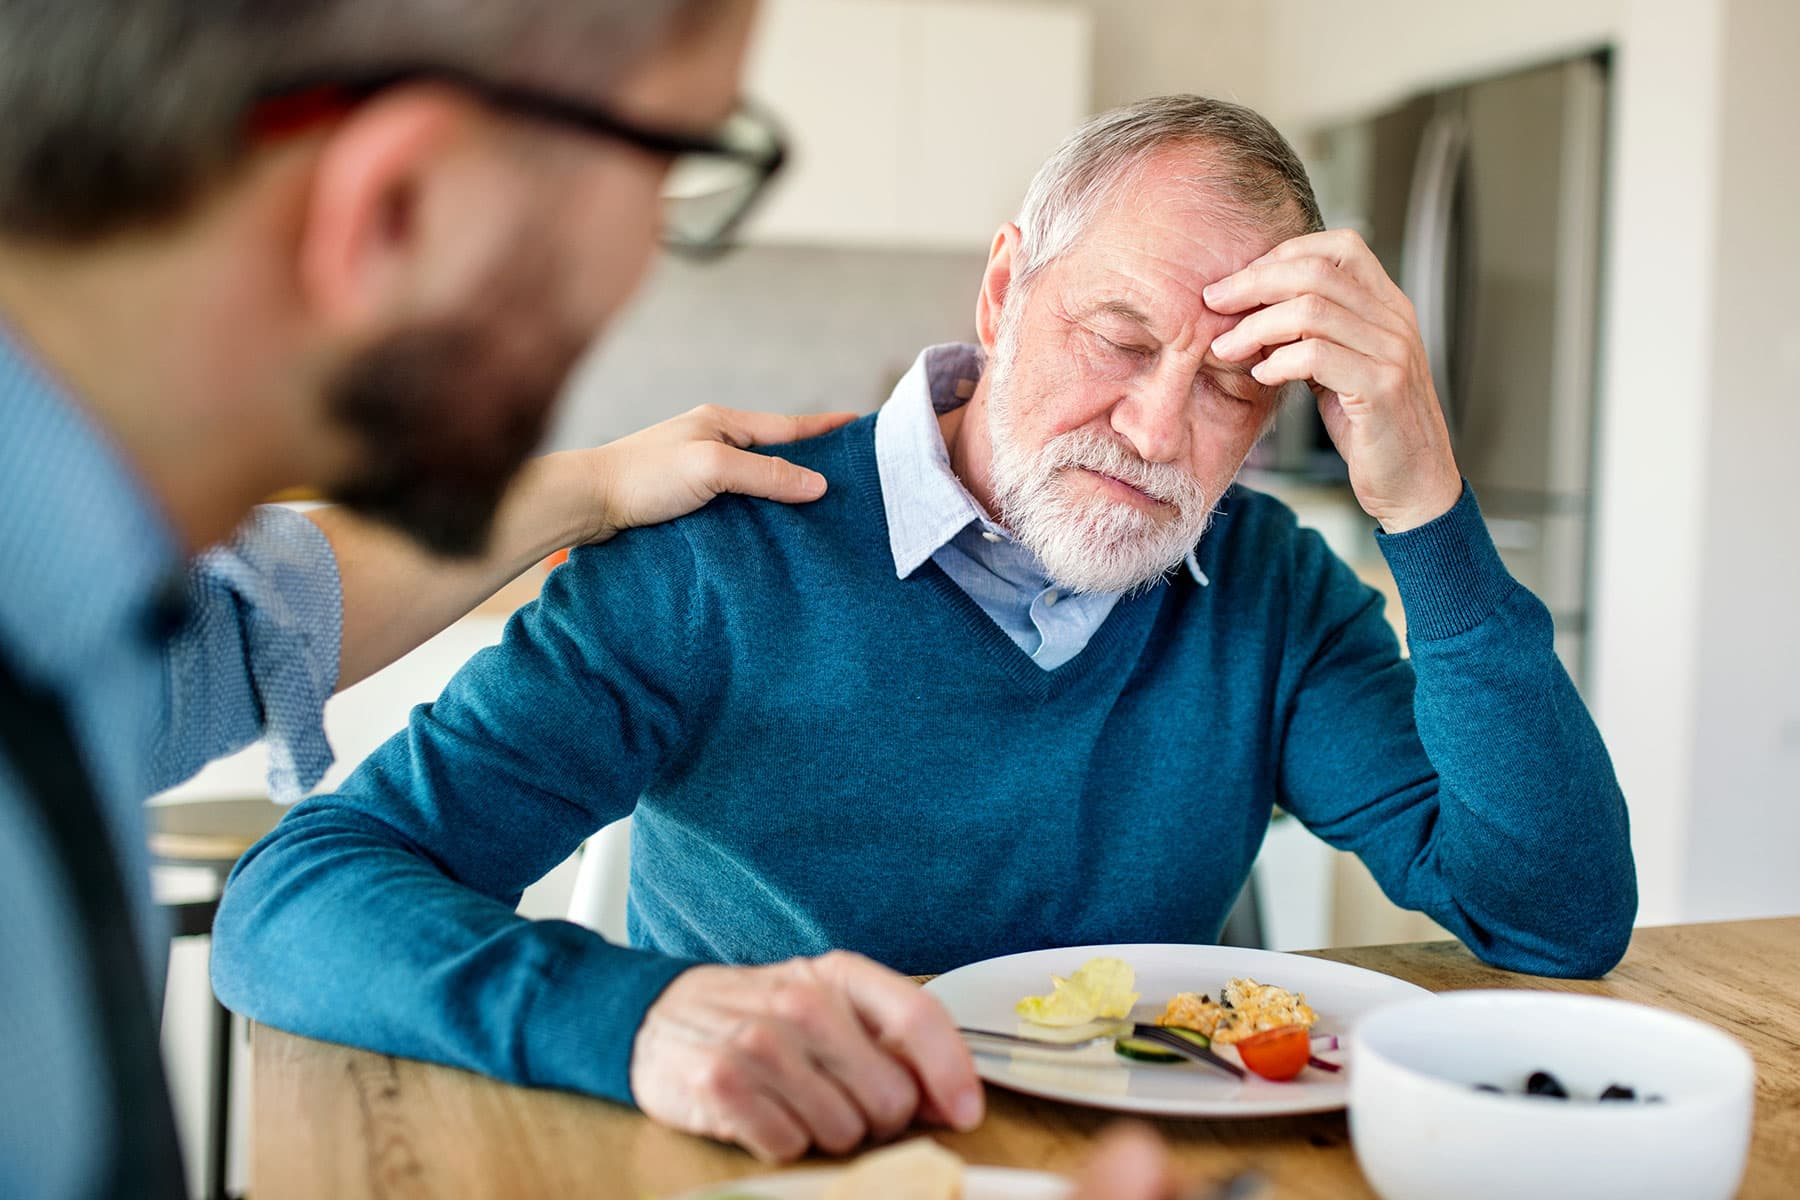 1 in 3 caregivers for the elderly may be untrained and screenless